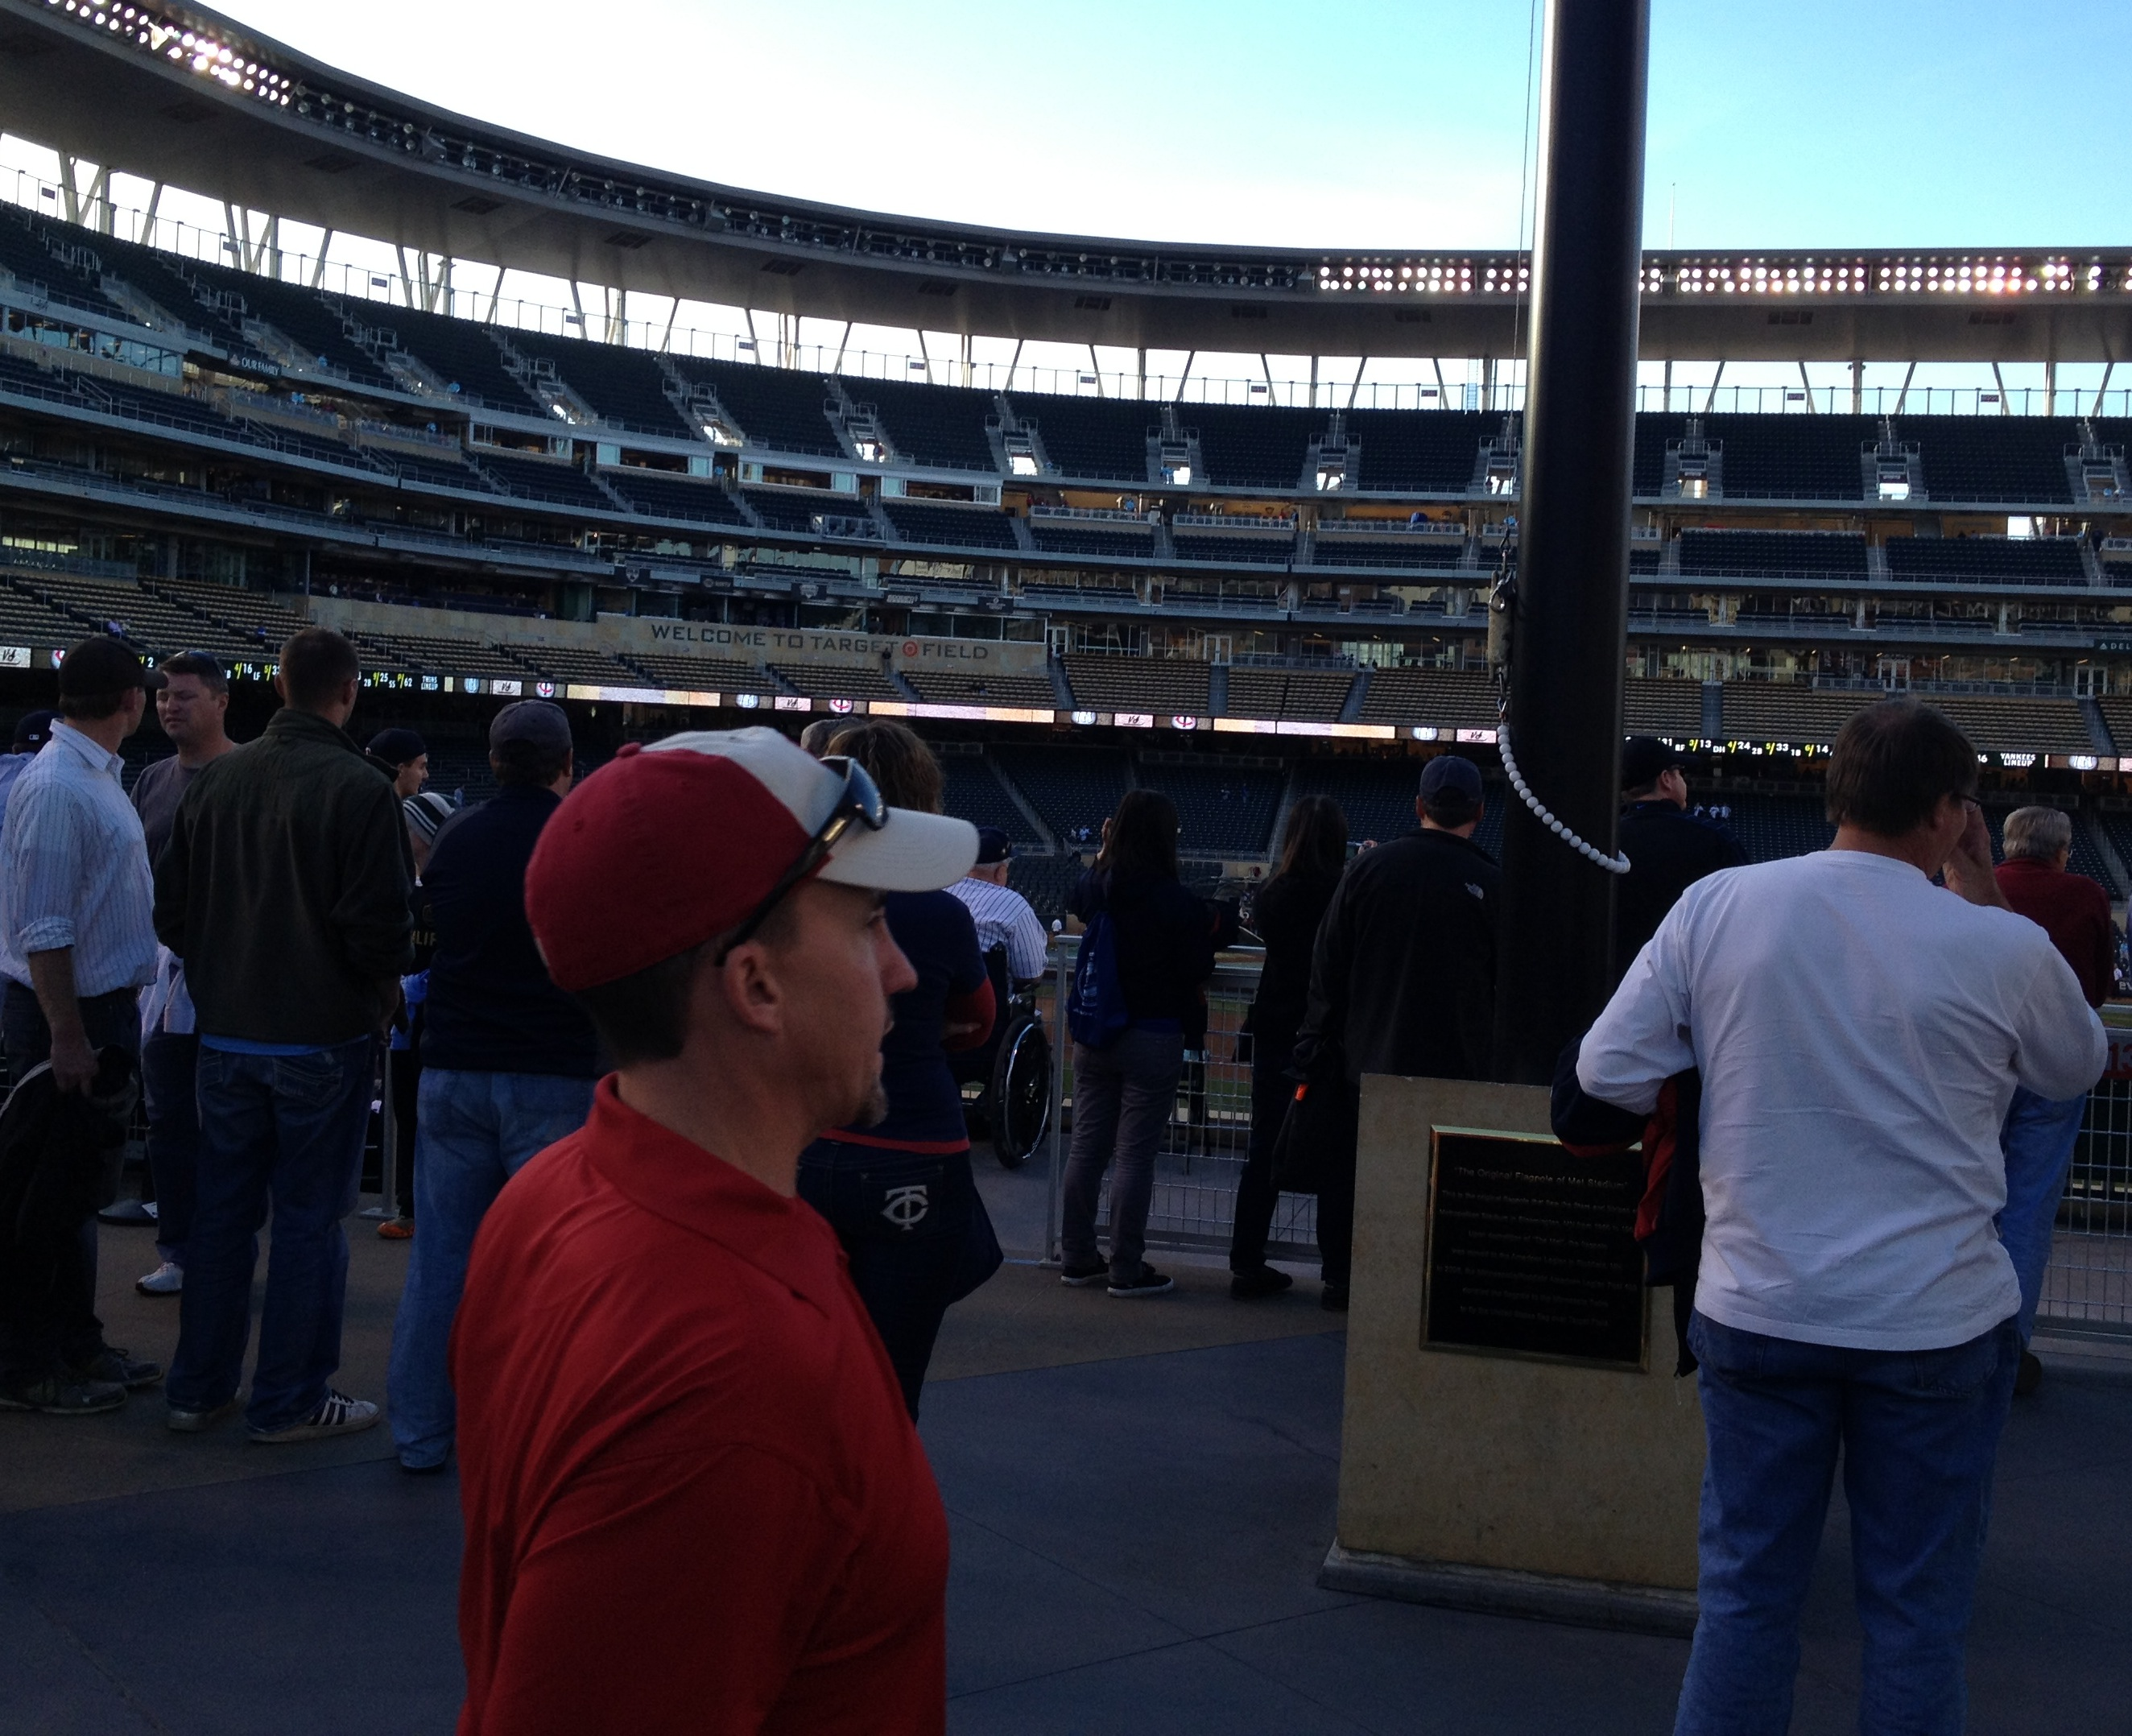 9 24 12 Yankees at Twins  Target Field  1df9a3002a5